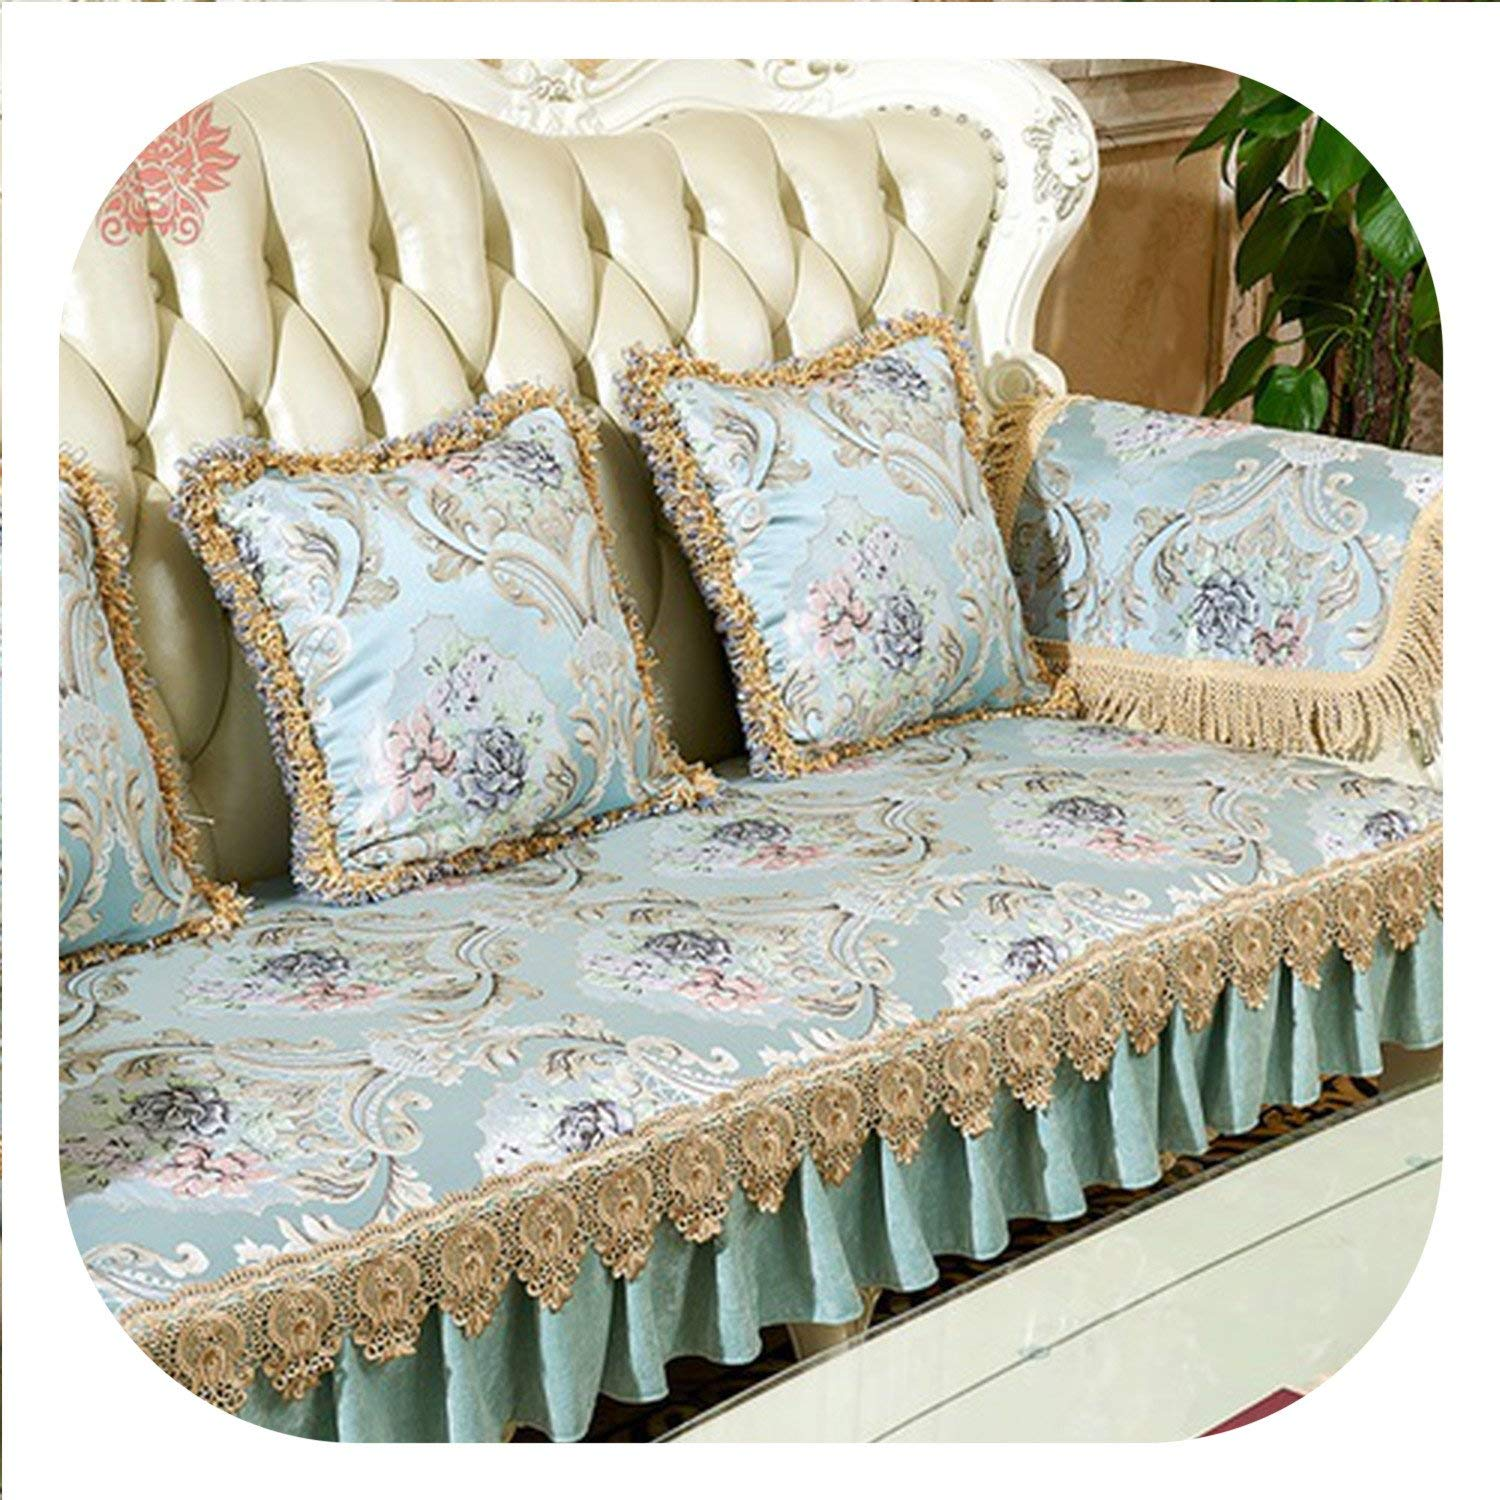 Amazon.com: Europe Style Luxury Floral Jacquard Embroidery ...